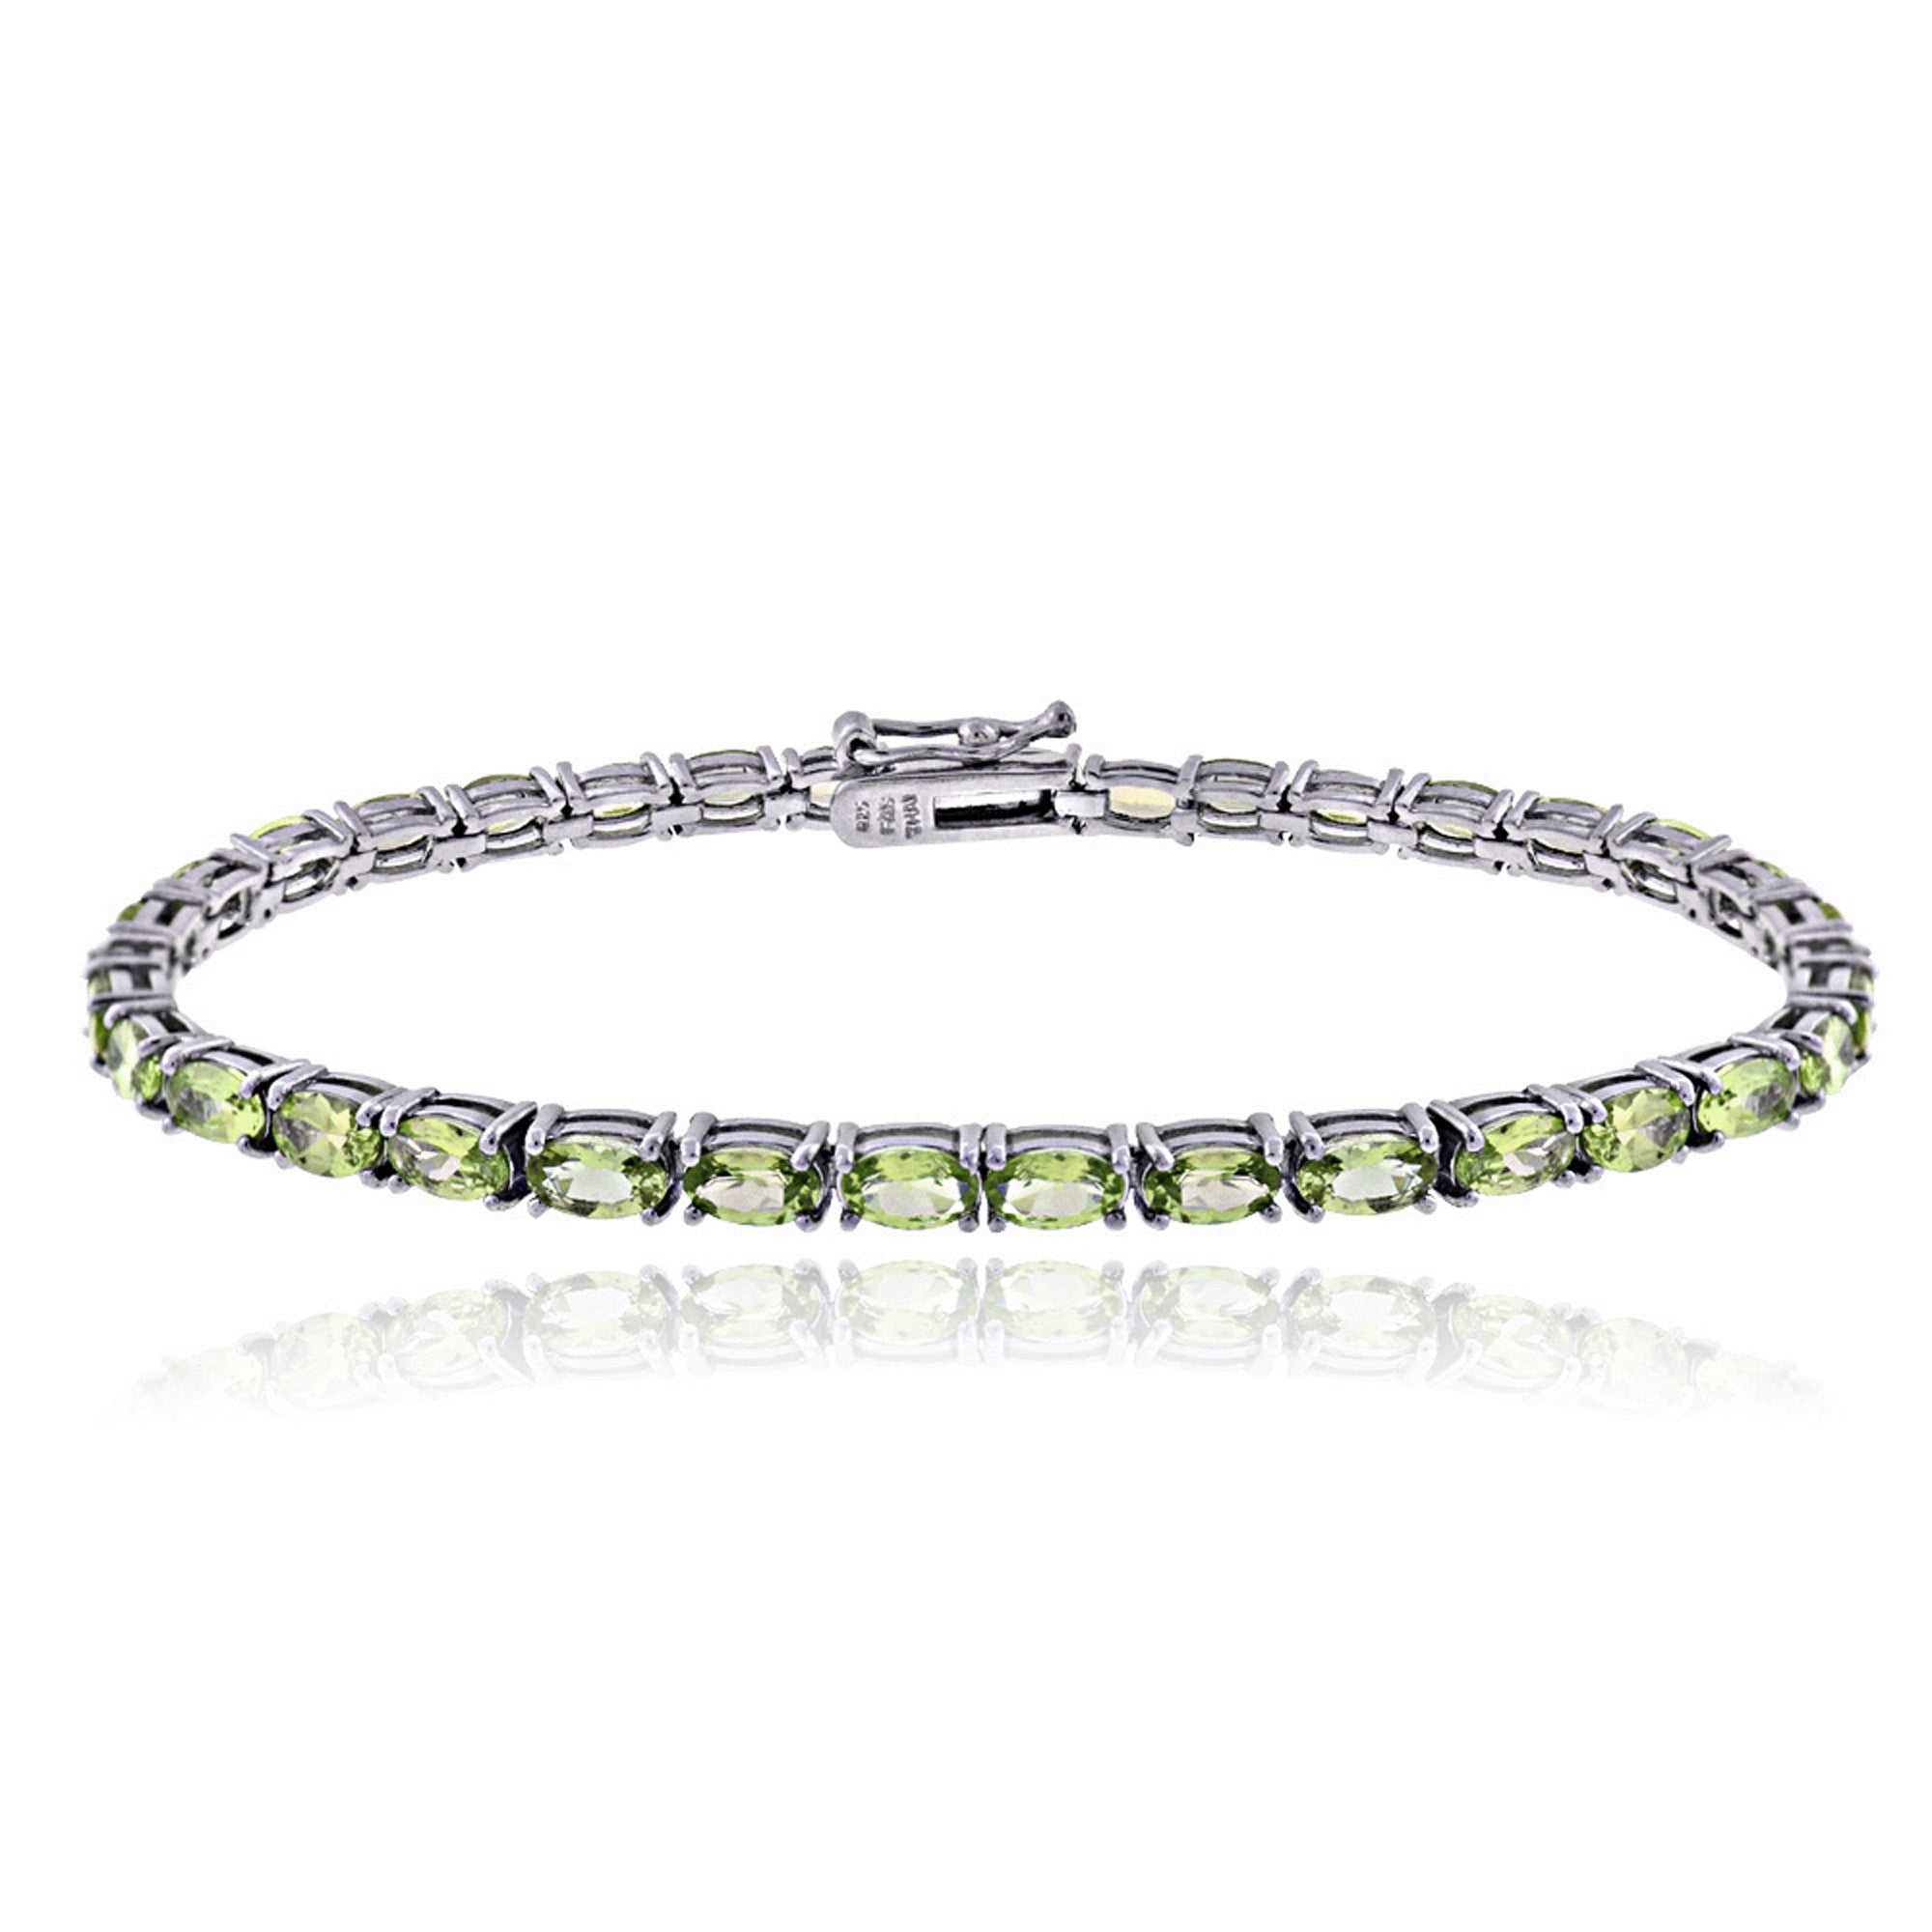 Birthstone Tennis Bracelet With CZ & Gem Accents in Sterling Silver - August Peridot